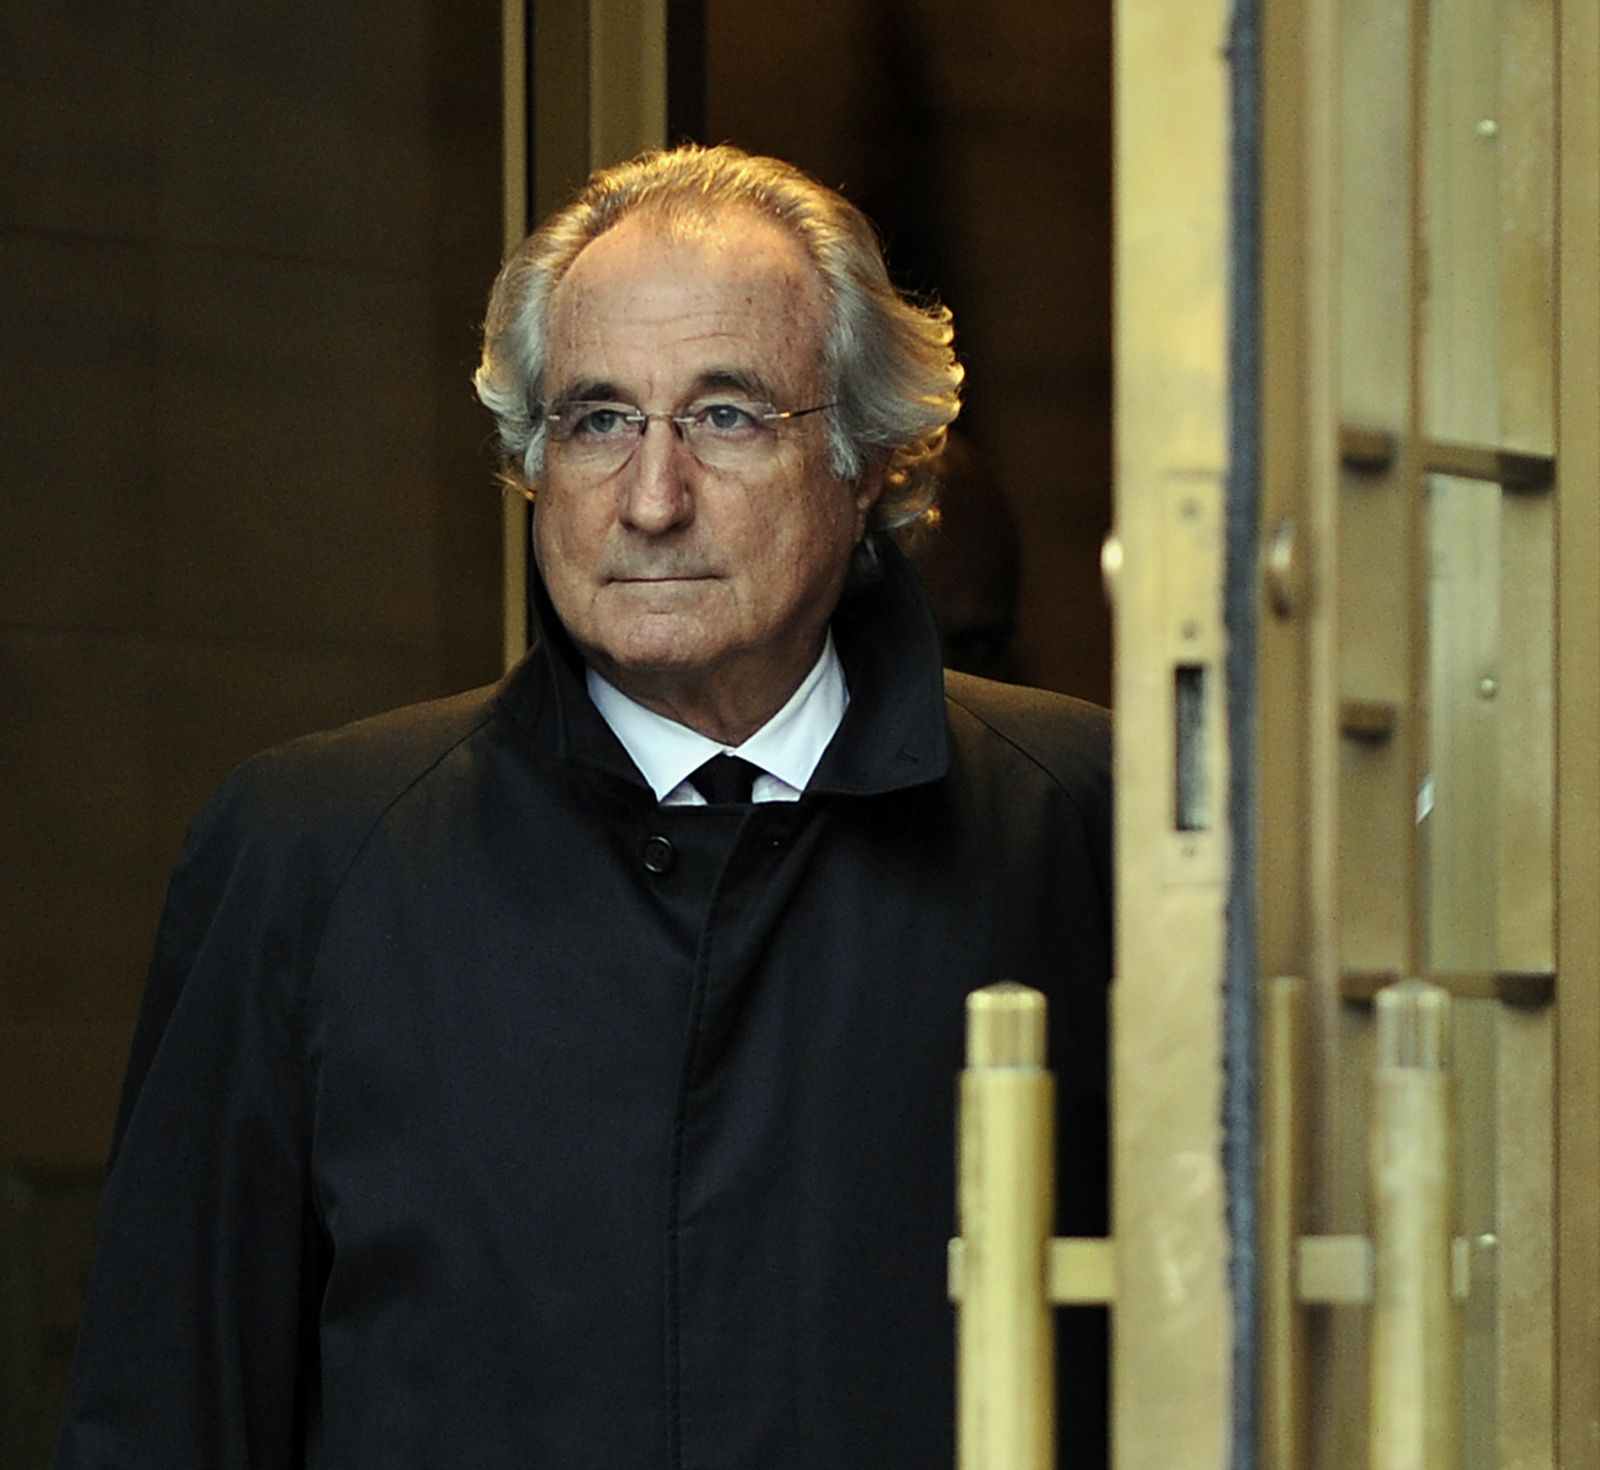 DECADE-US-FINANCE-FRAUD-JUSTICE-MADOFF